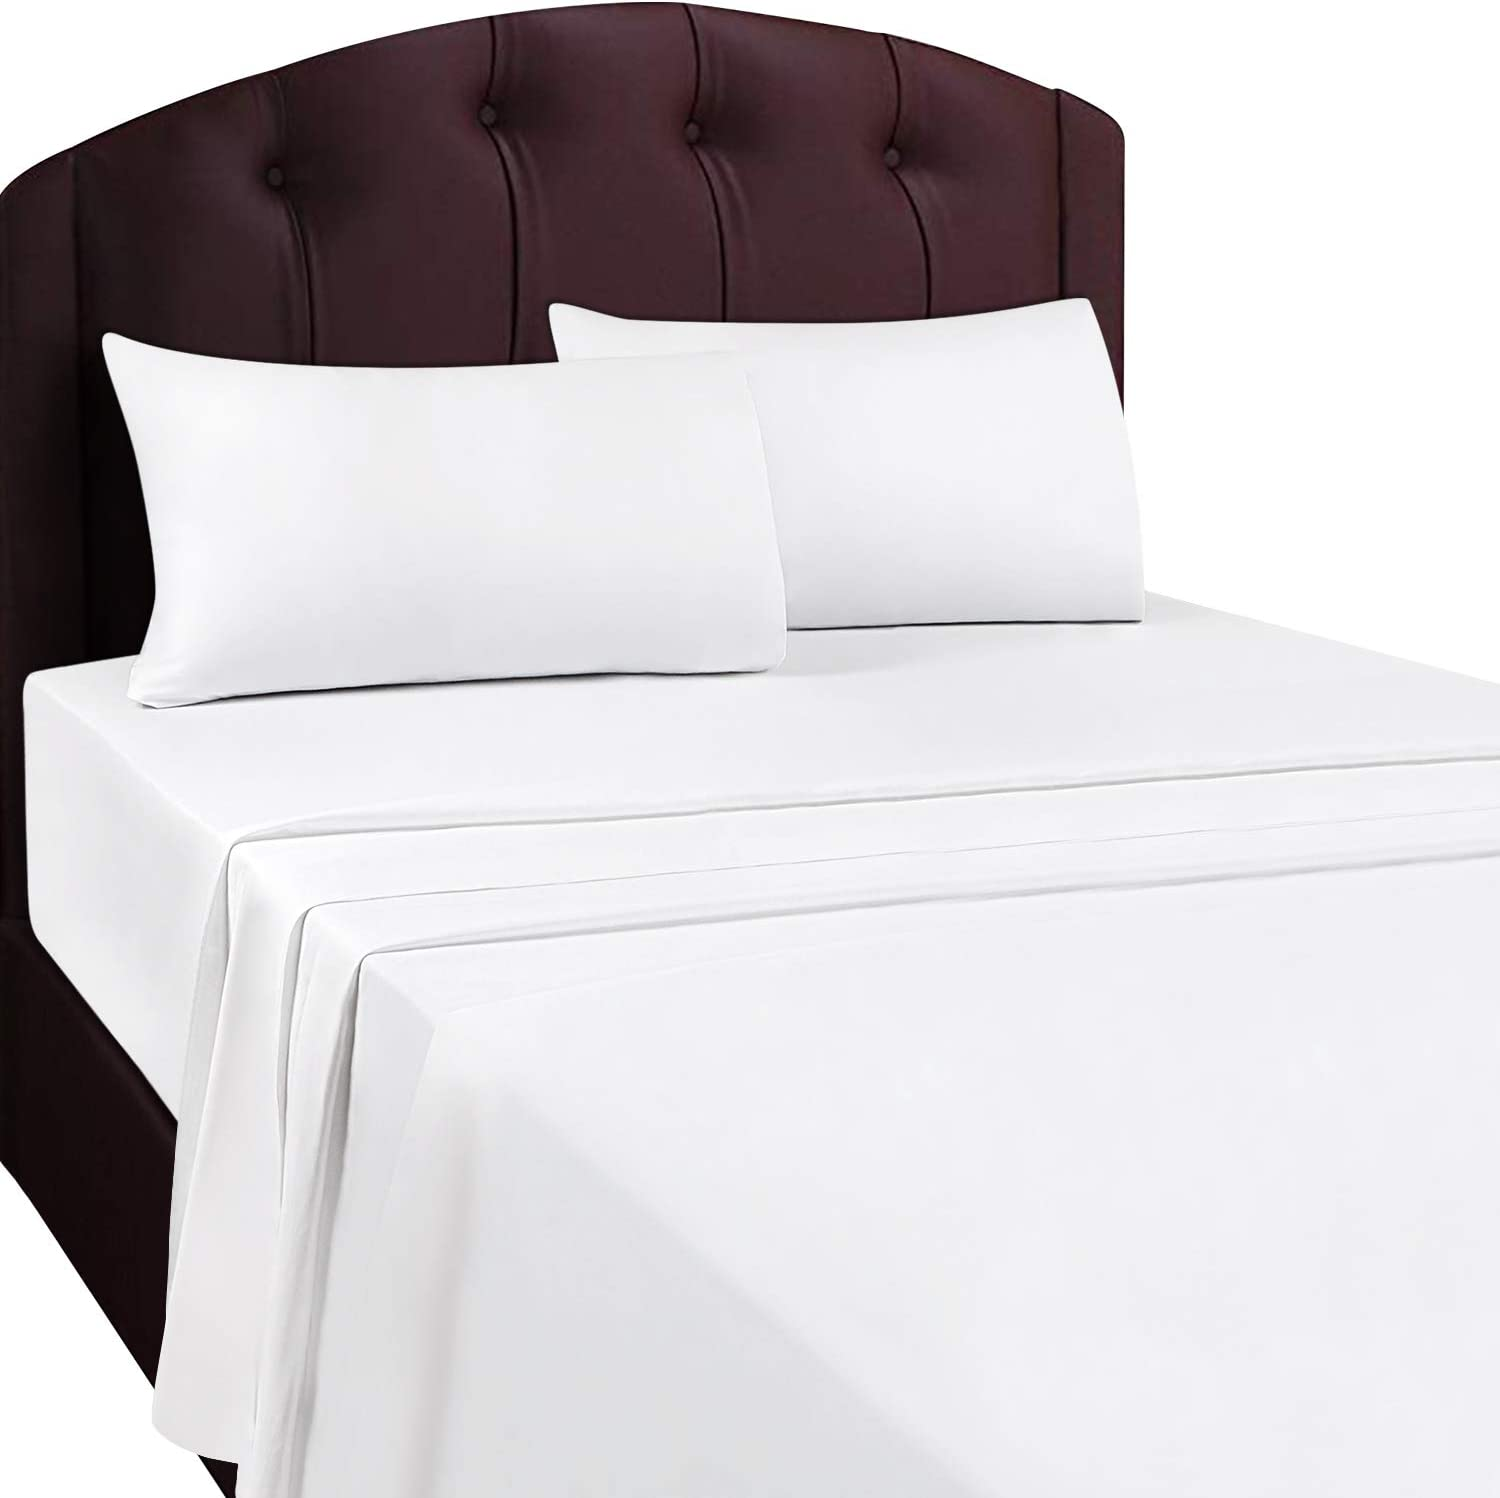 Utopia Bedding Flat Sheet- Soft Brushed Microfiber Fabric - Shrinkage & Fade Resistant Top Sheet - Easy Care - 1 Flat Sheet Only (Twin, White): Home & Kitchen